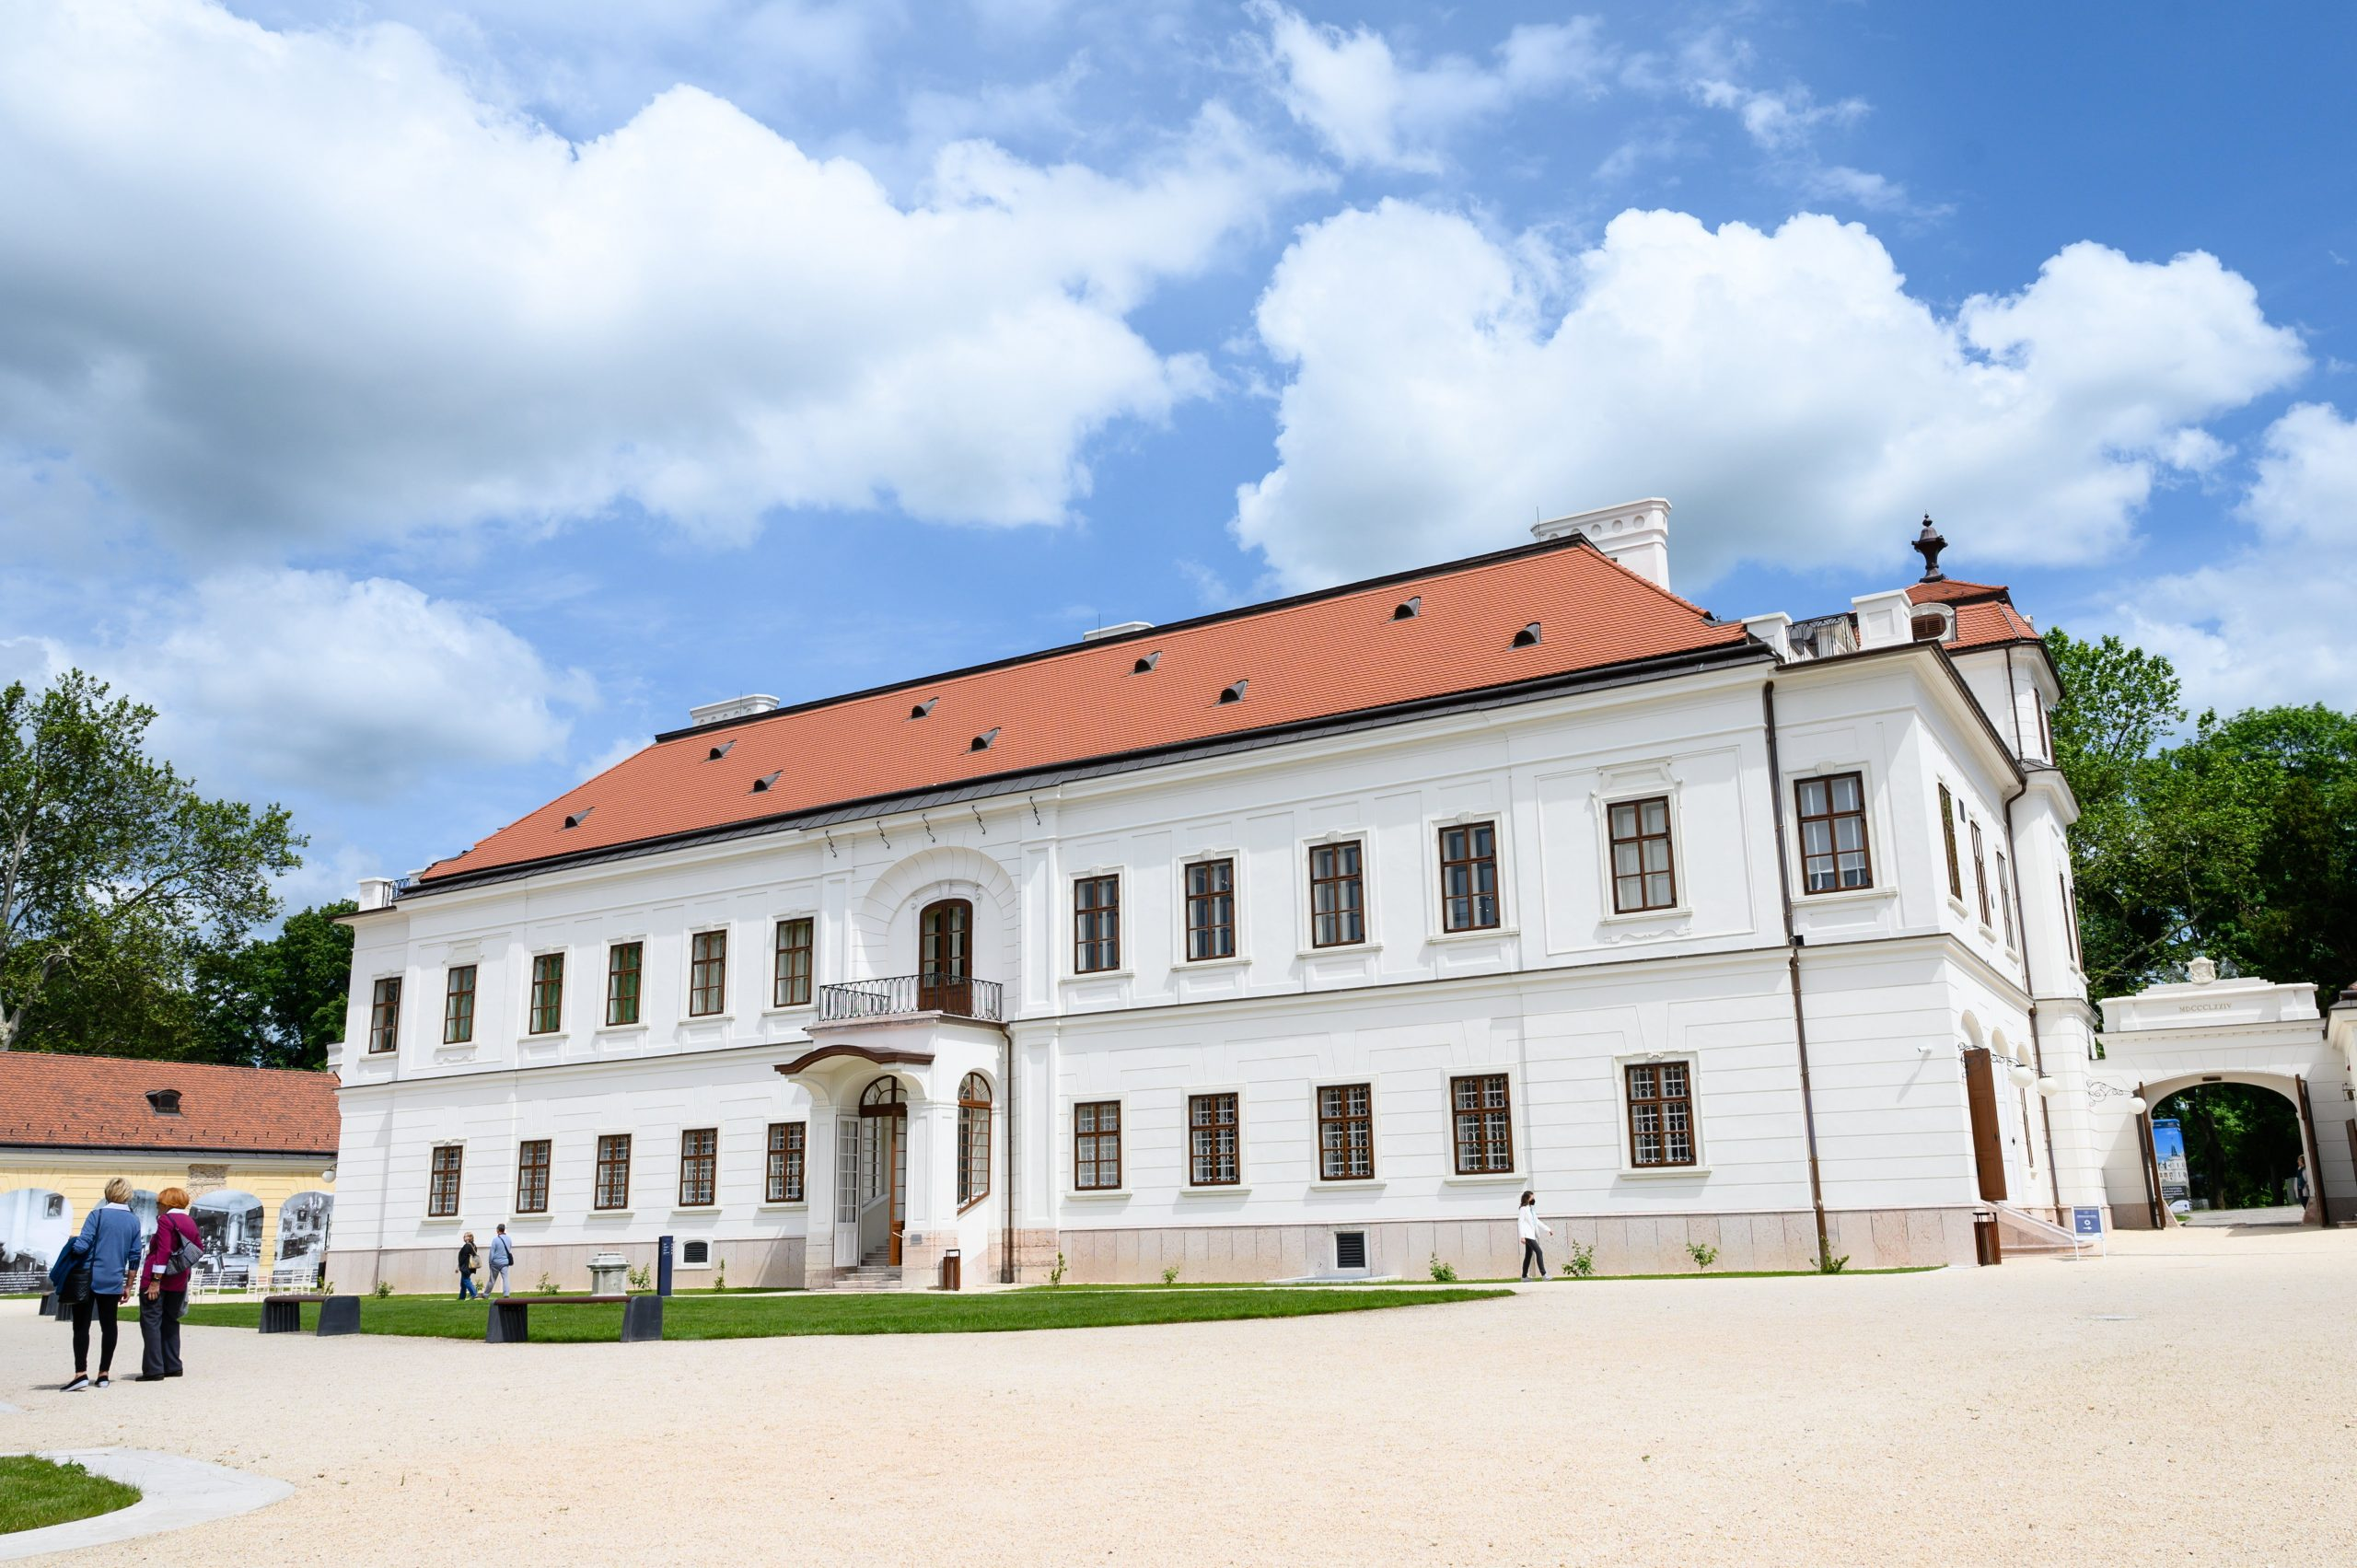 Esterházy Palace in Tata Awaits Visitors in its Former Glory